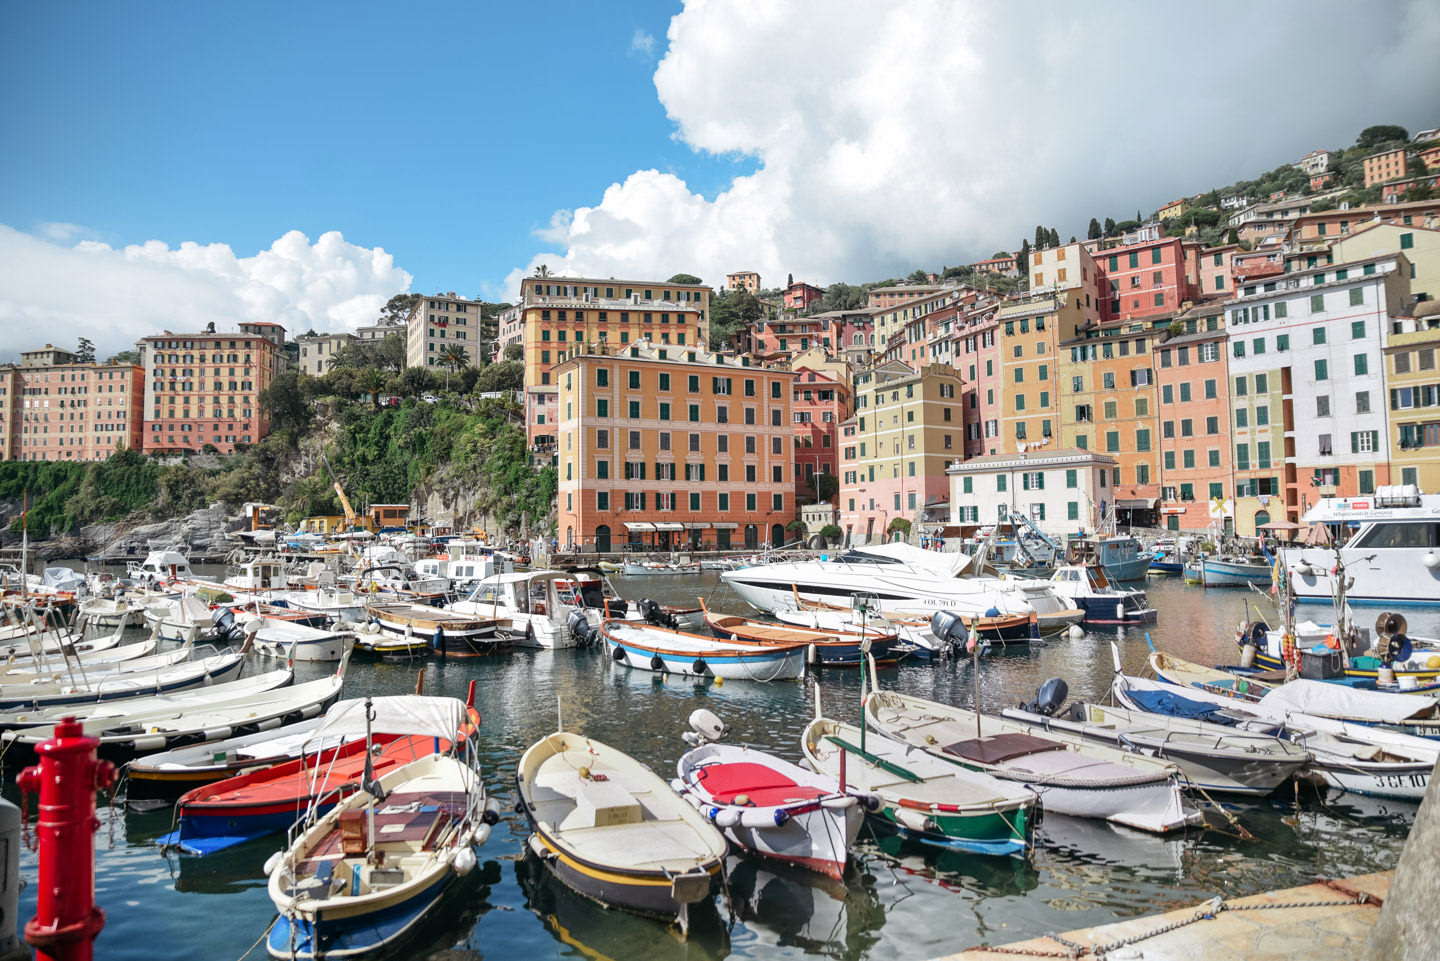 Blog-Mode-And-The-City-Lifestyle-Italie-Bocadasse-Camogli-Sestri-Levante-23